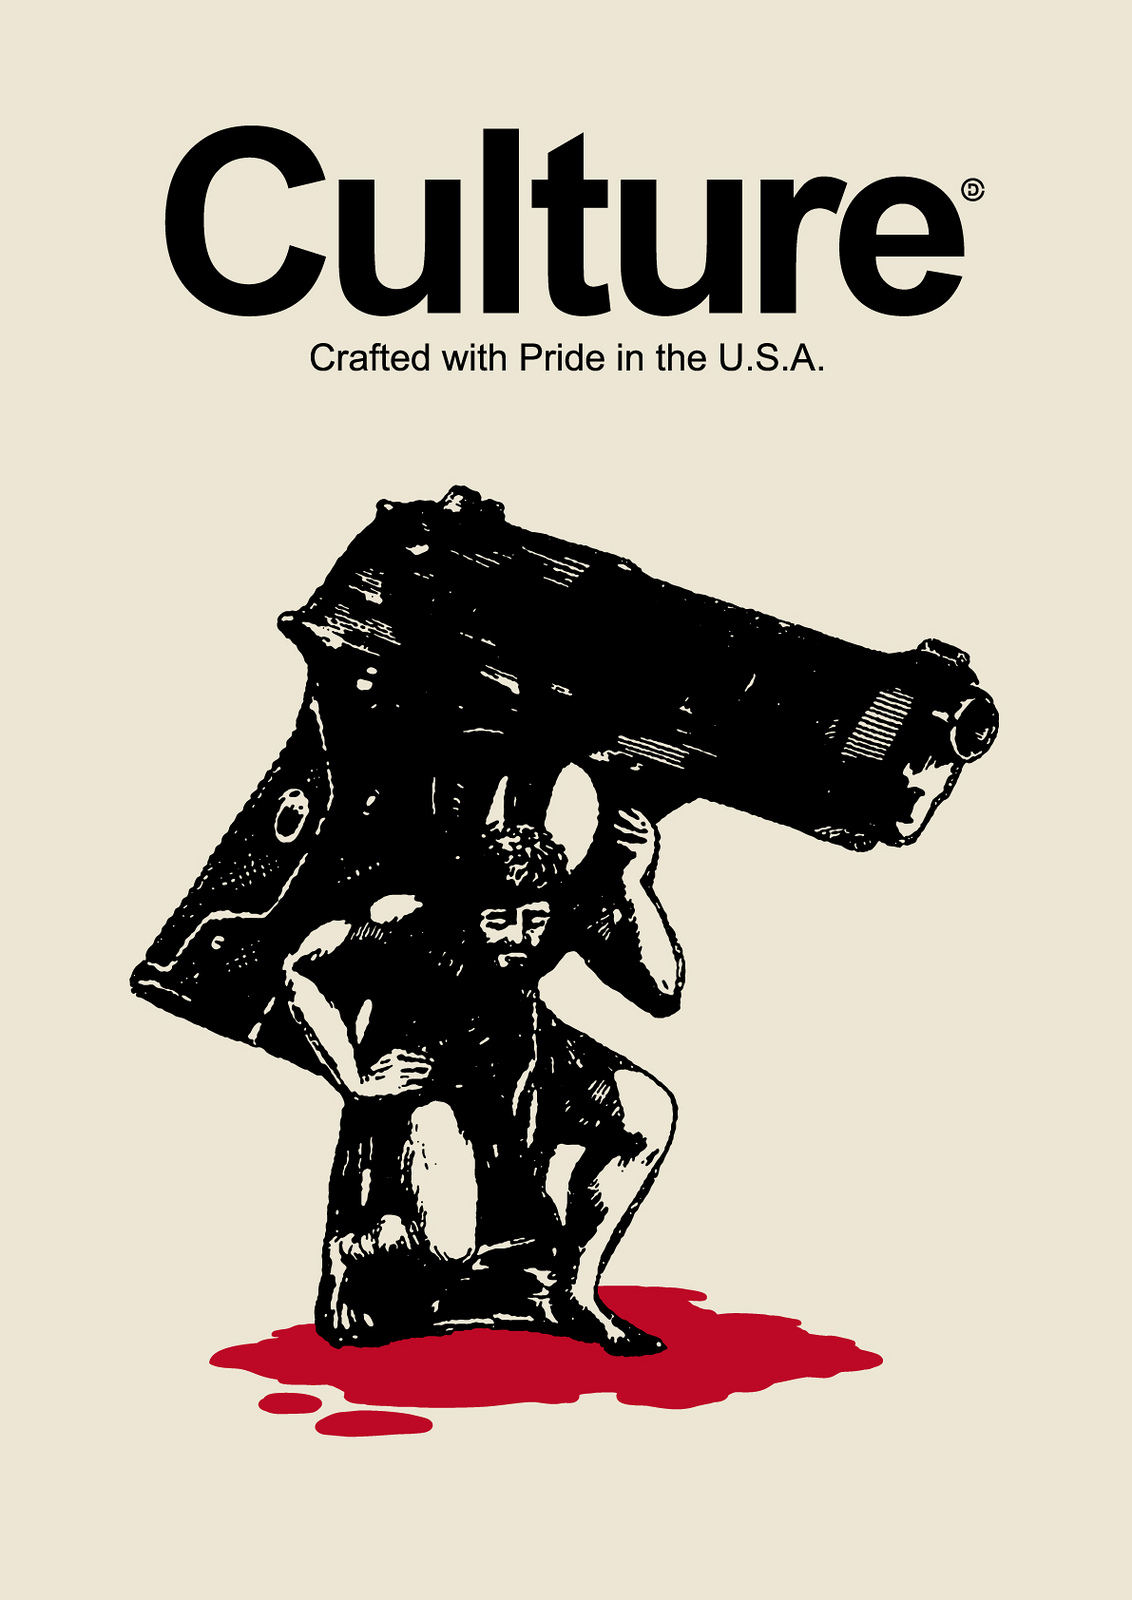 Gun Culture 2012. PHOTO: Christopher Dombres (CC BY 2.0)